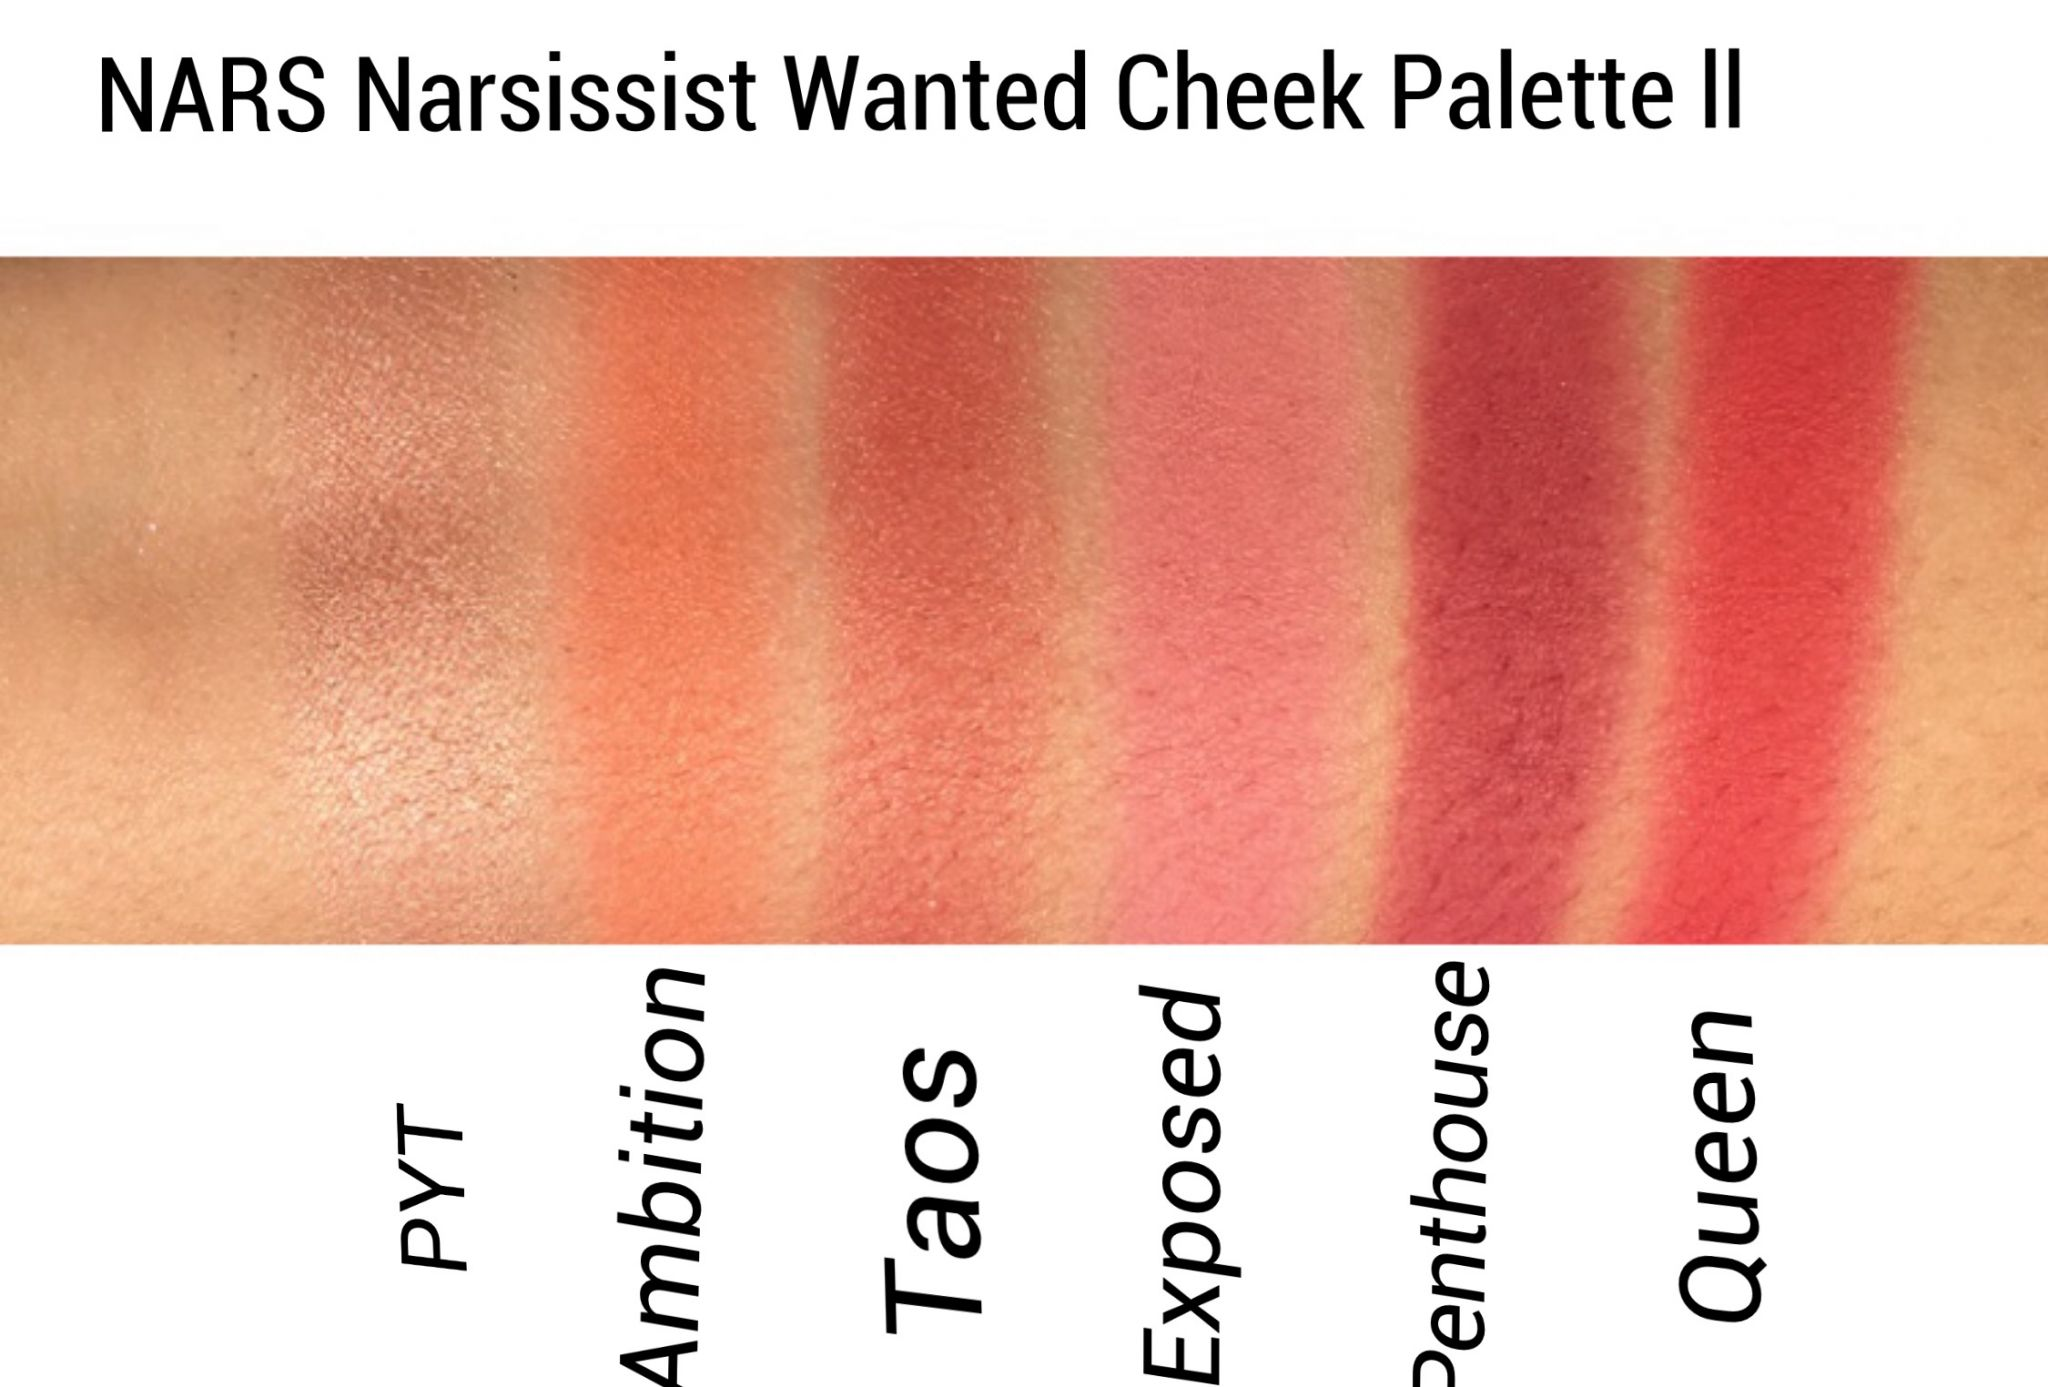 NARSissist Wanted Cheek Palette I by NARS #3